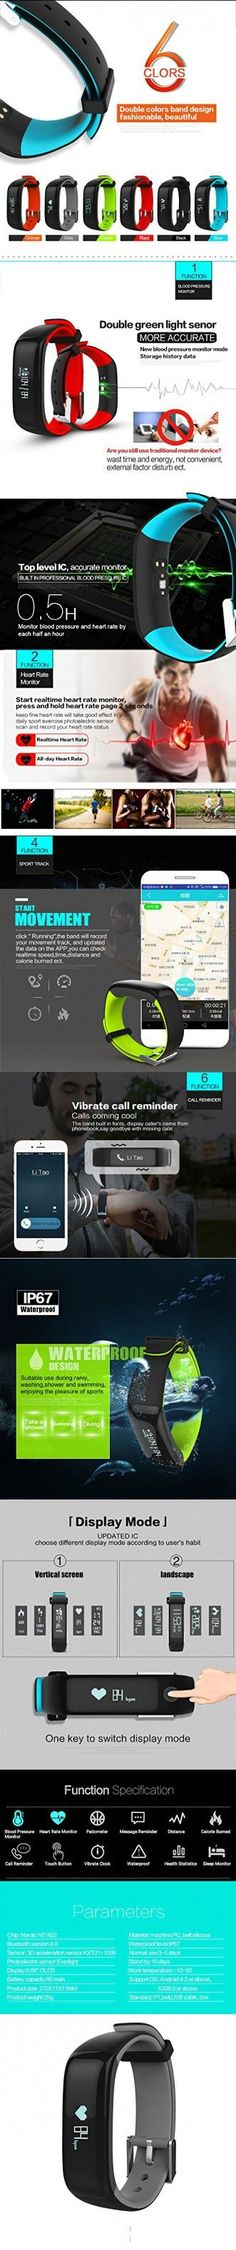 Kassica Health Fitness Tracker with Heart Rate Monitor and Blood Pressure Sports Smart Wristband Pedometer Smart Bracelet Bluetooth Smart Watch for IOS IPhone Android Samsung Phones (Gray) Women's Running Gadgets... http://www.ebay.com/sch/i.html?_from=R40&_trksid=p4712.m570.l1313.TR6.TRC1.A0.H0.Xsmart+watch+for+women.TRS1&_nkw=smart+watch+for+women&_sacat=0&rmvSB=true